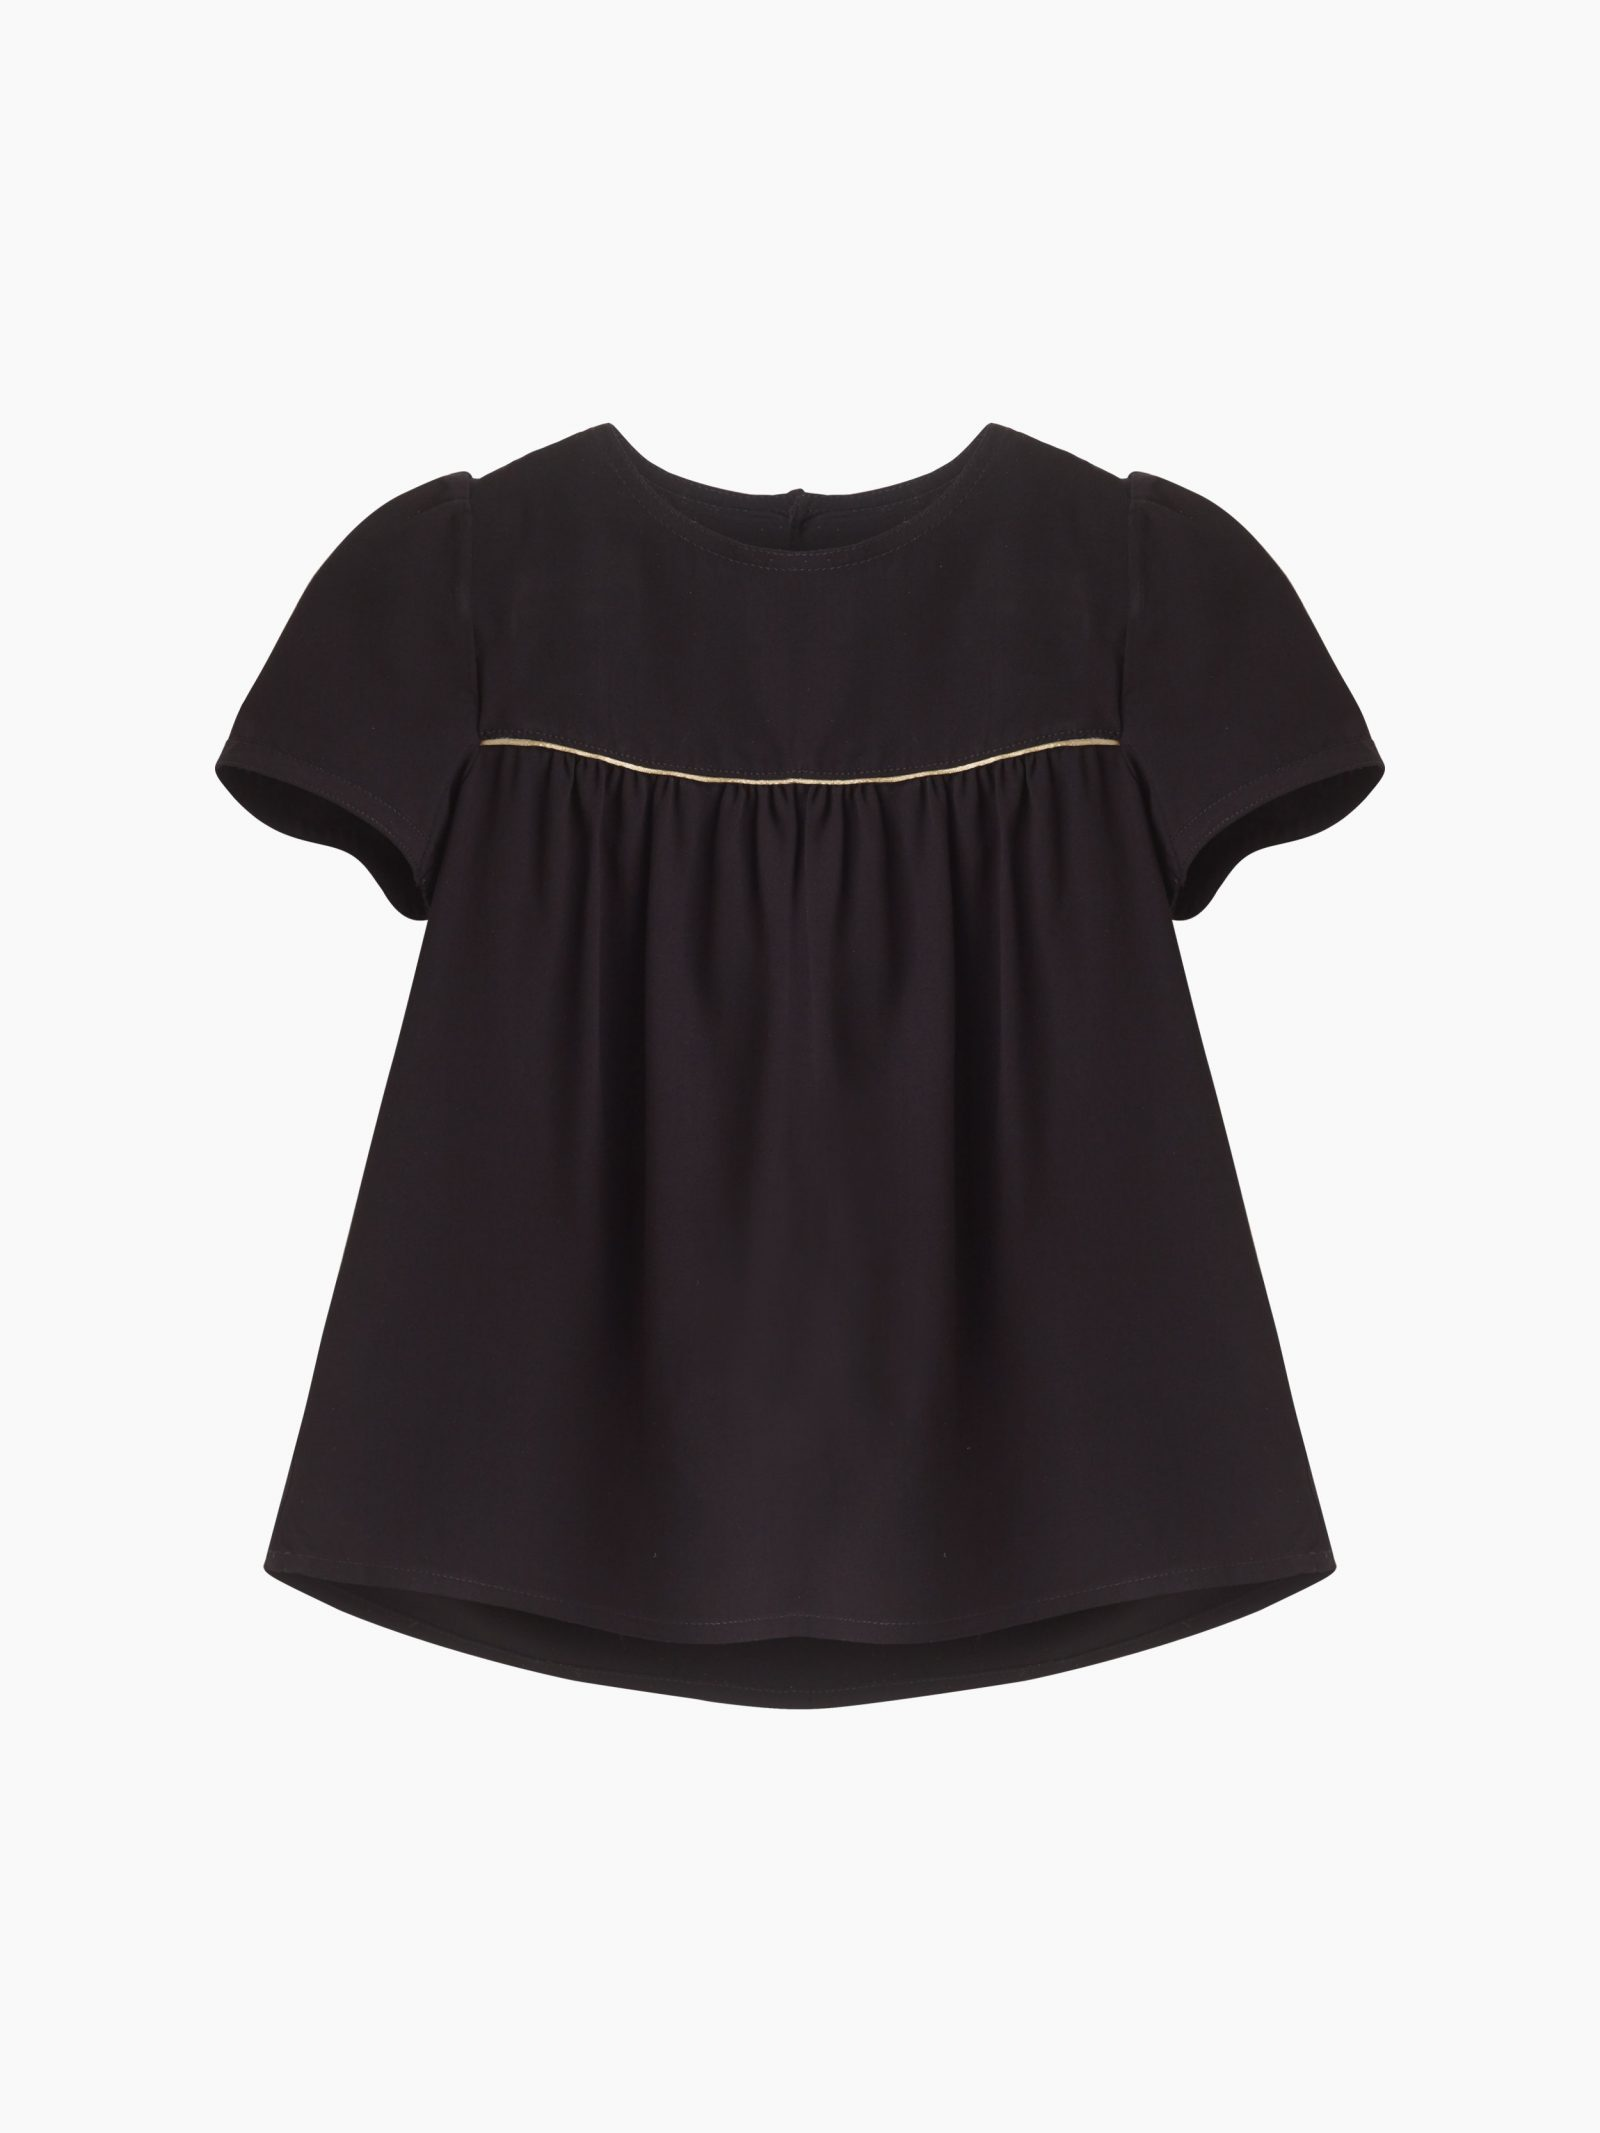 Girls black blouse with gold piping